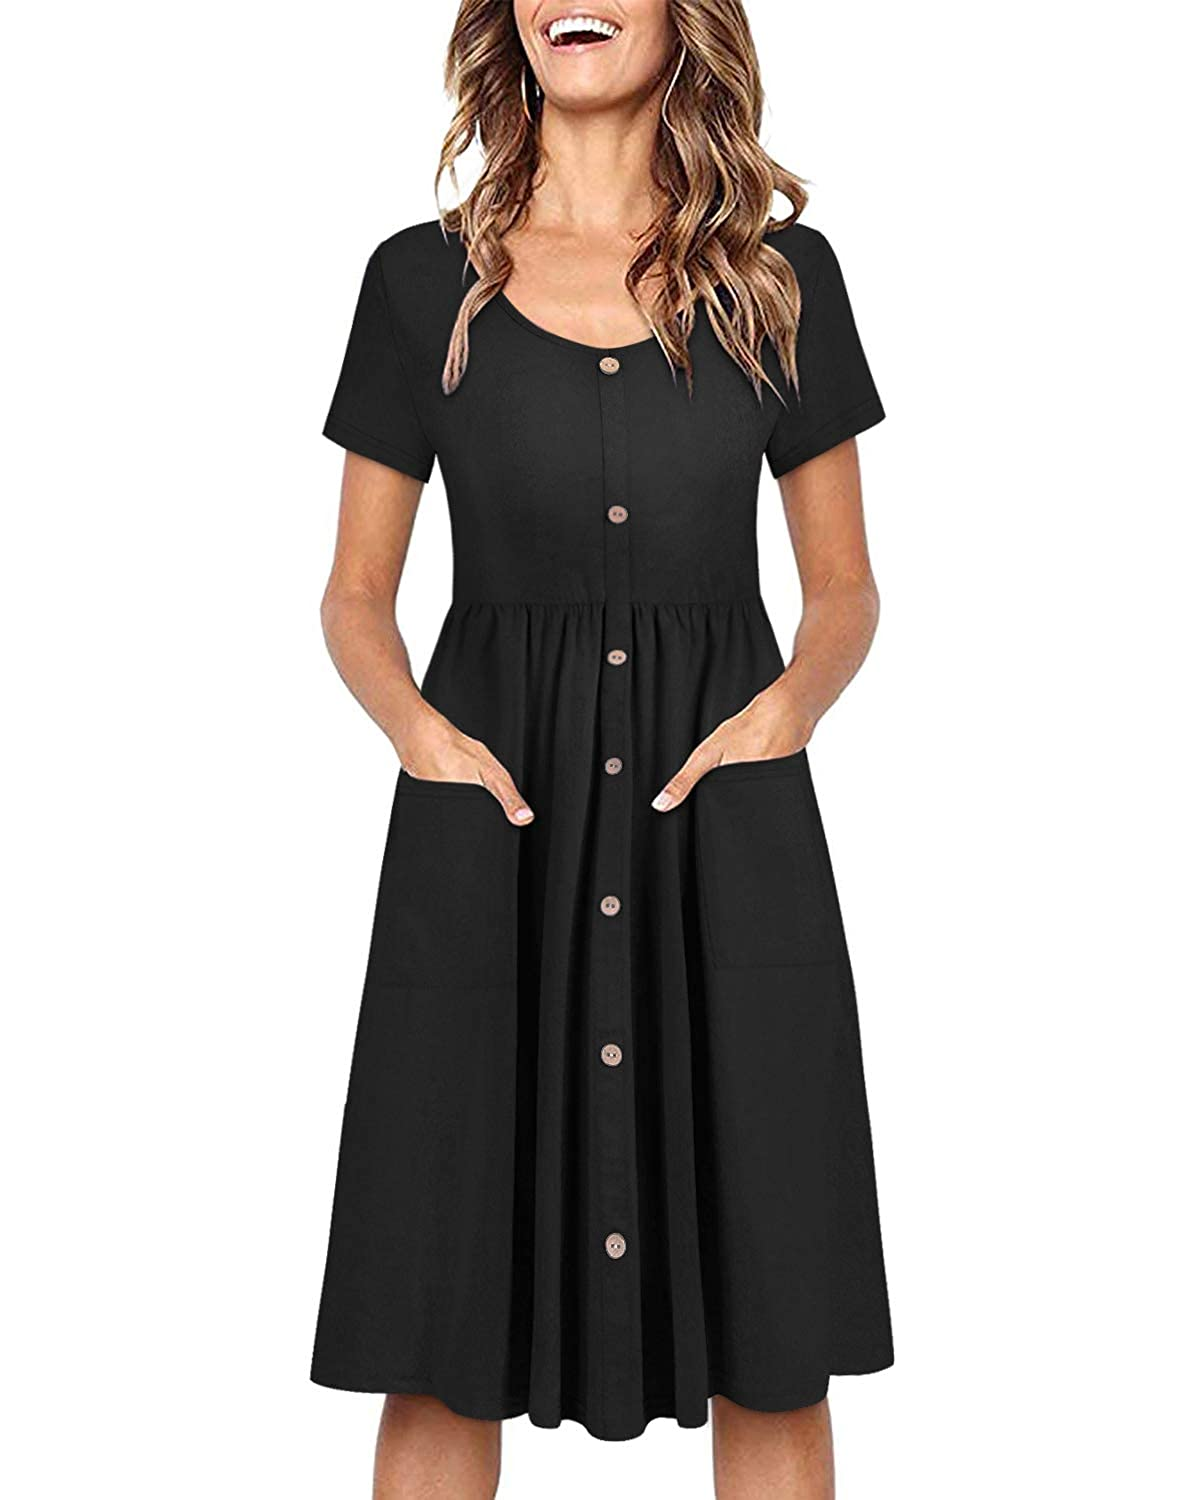 e78a700ecbf OUGES Women s Long Sleeve V Neck Button Down Skater Dress with Pockets at  Amazon Women s Clothing store